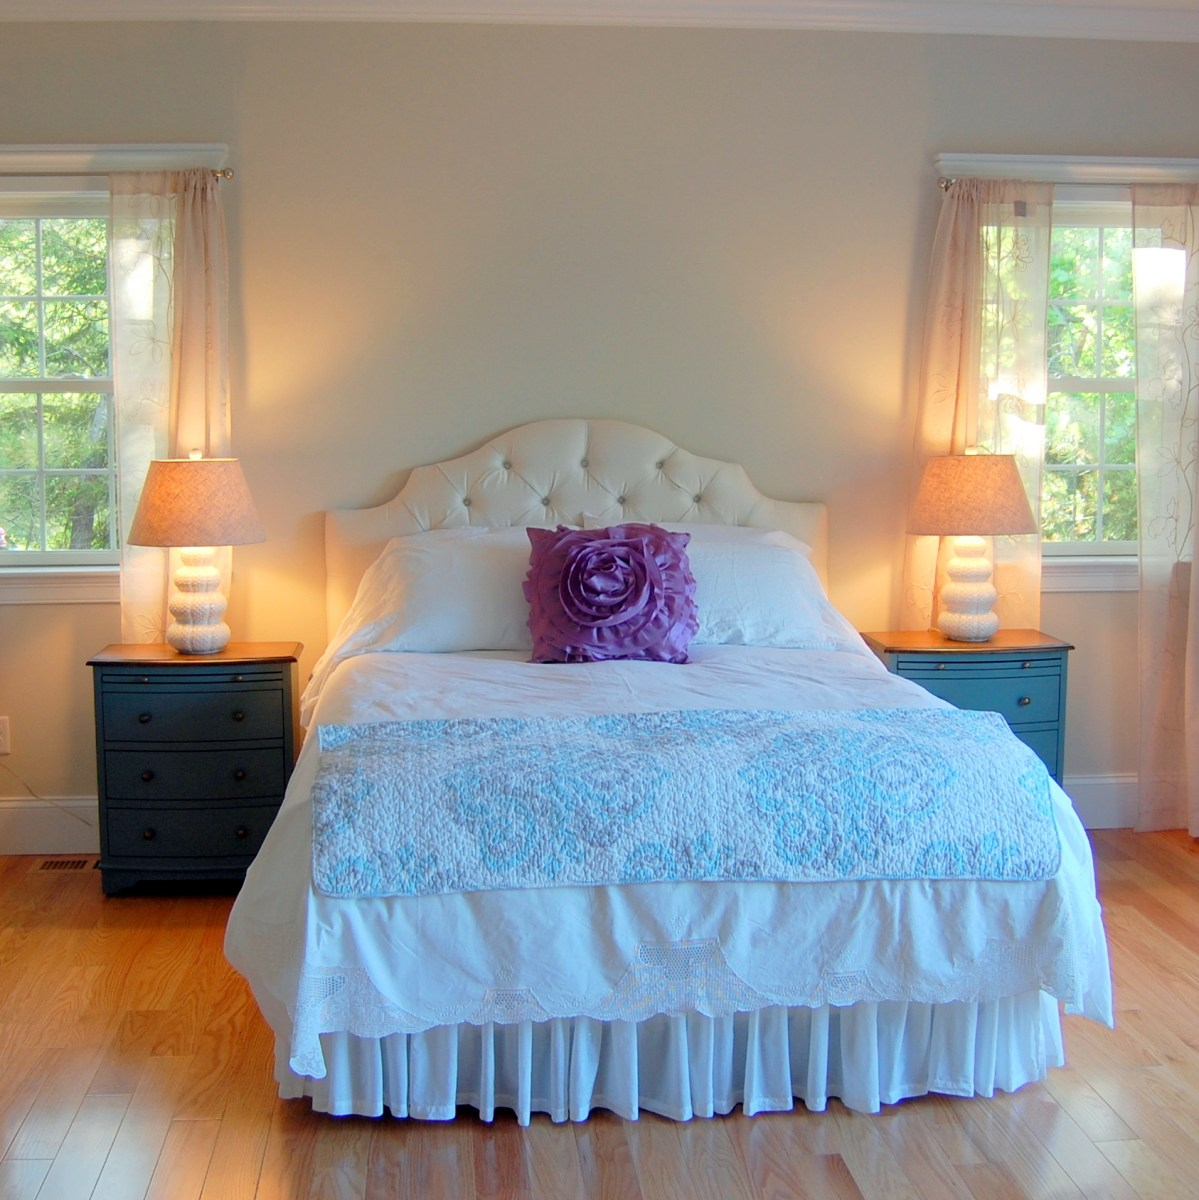 Home staging for Upper Cape | Orleans and beyond